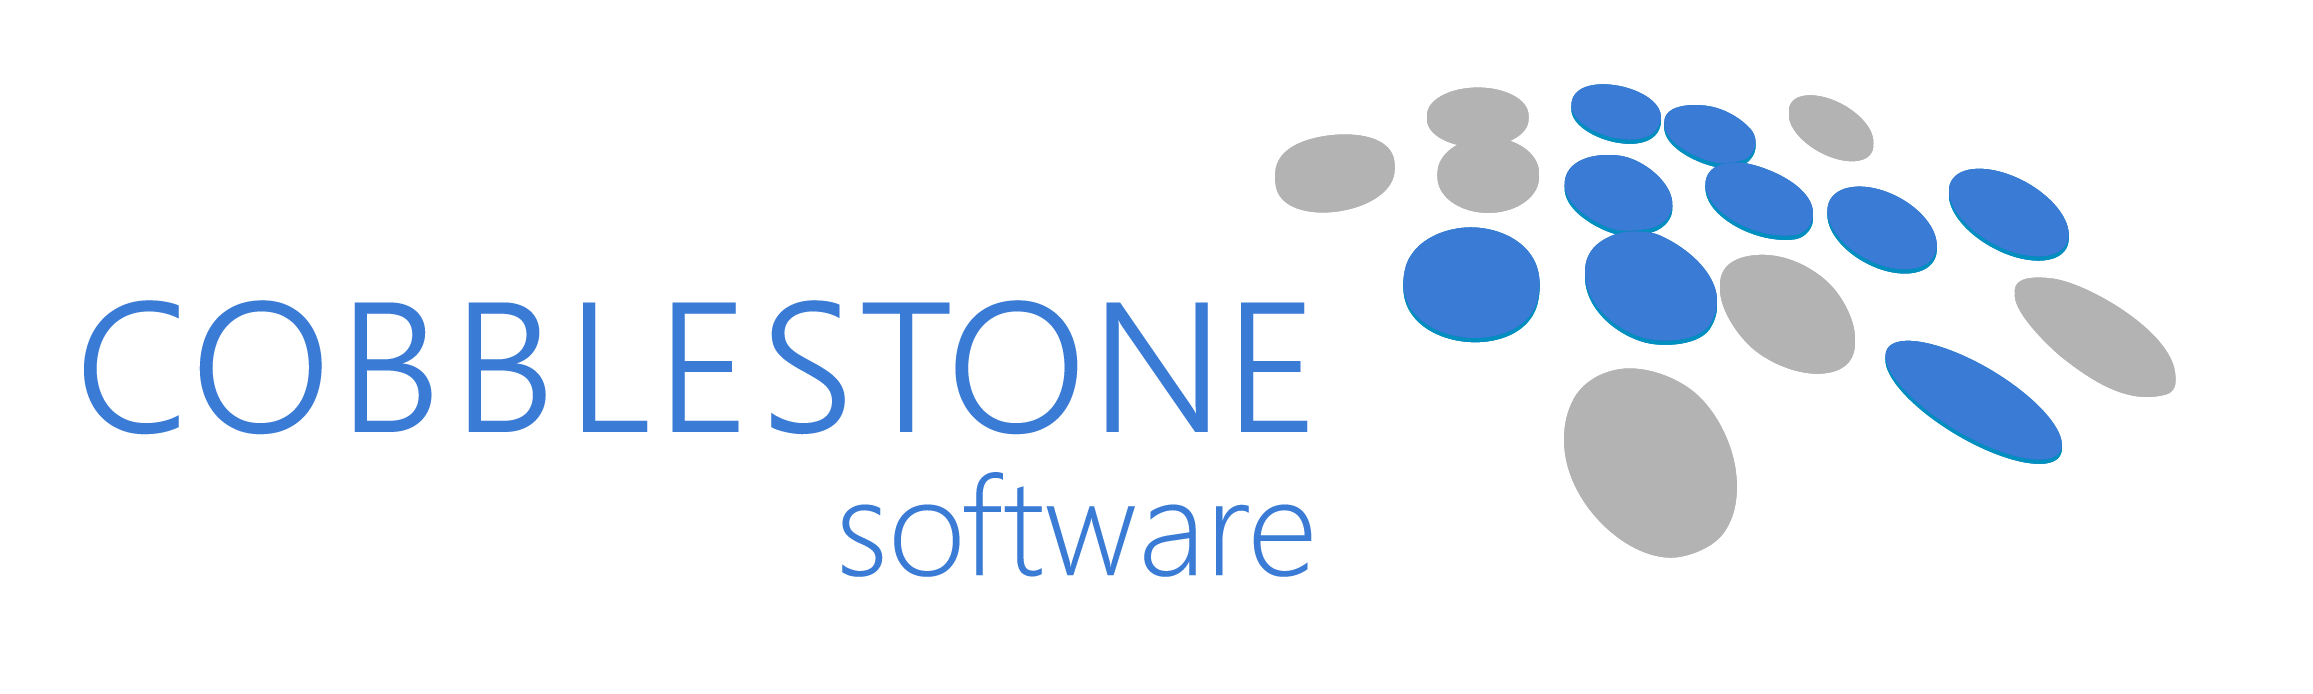 CobbleStone Software CLM Logo Aqua Grey